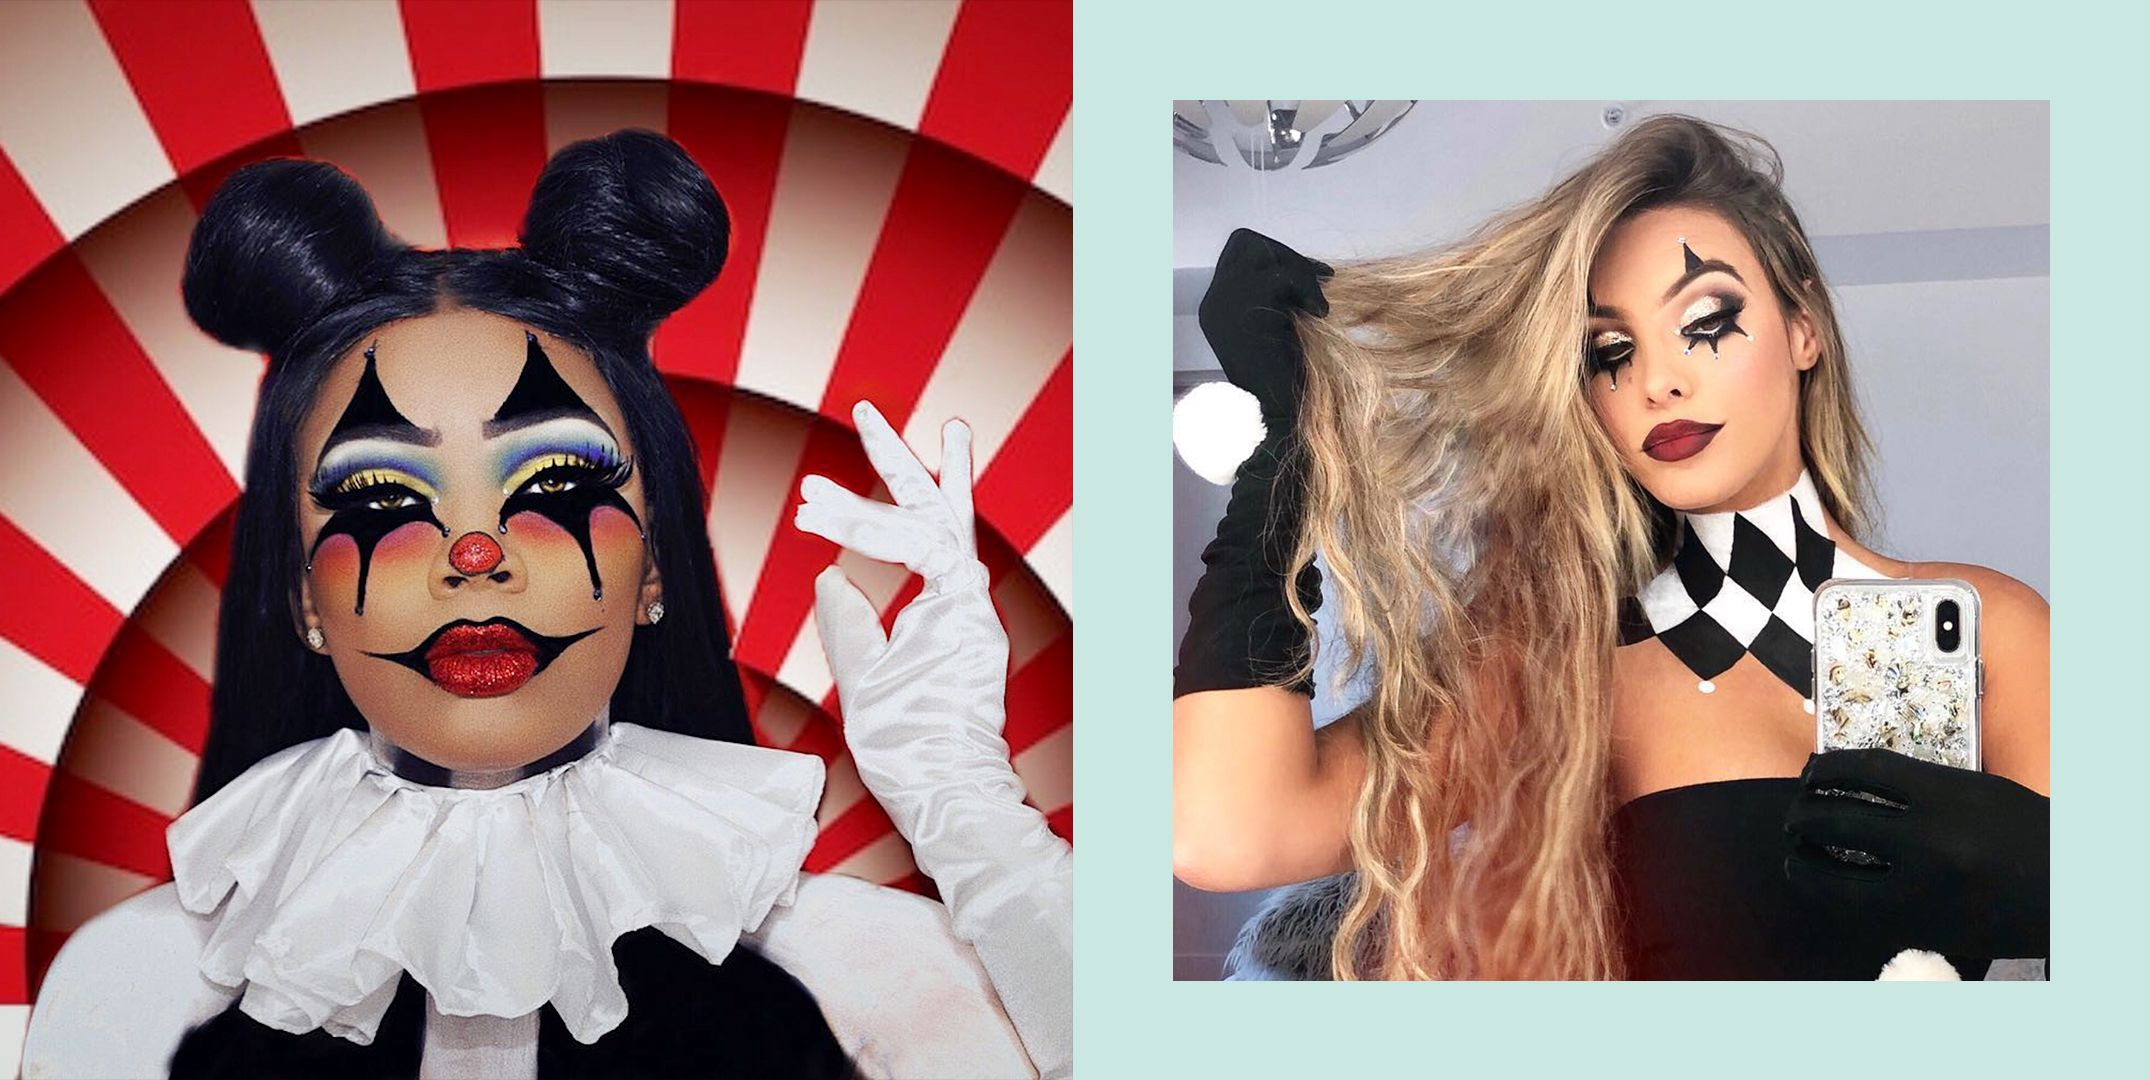 Clown Halloween Costumes For Girls.27 Cute Clown Makeup Ideas And Easy Tutorials For Halloween 2020